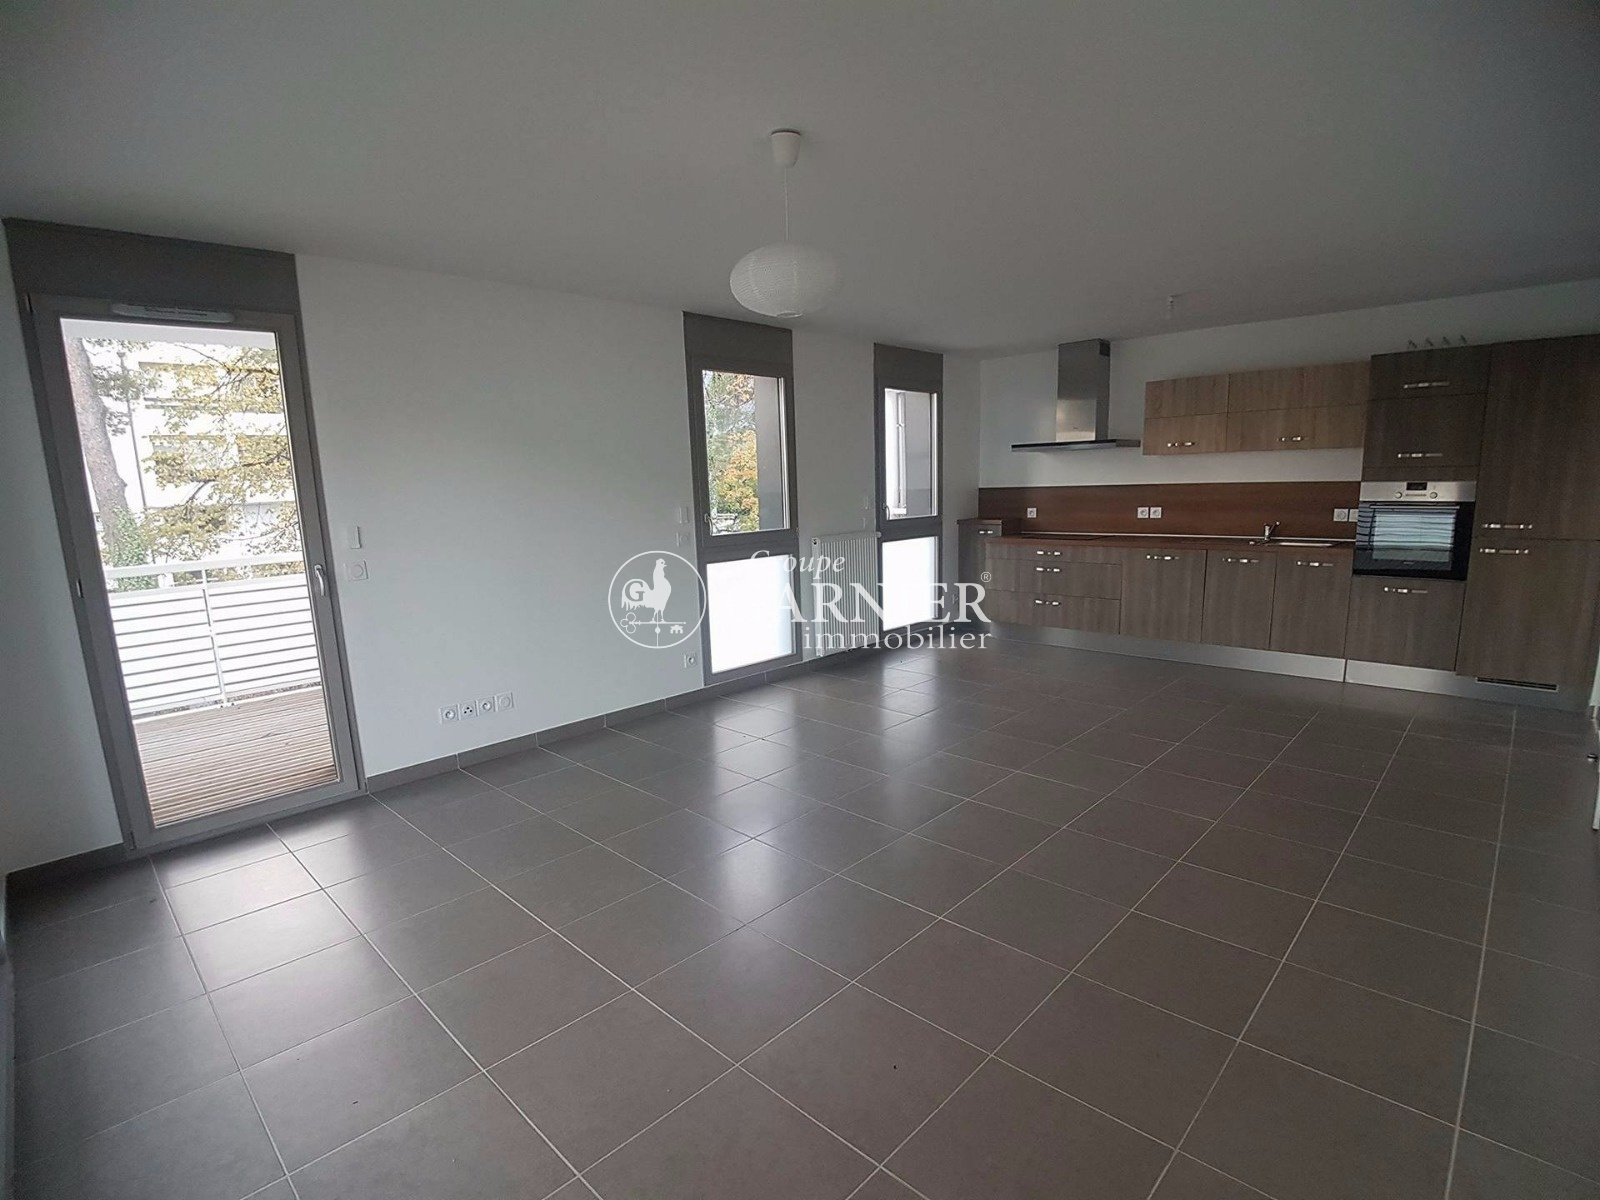 Annonce vente appartement gex 01170 69 m 348 000 for Location garage gex